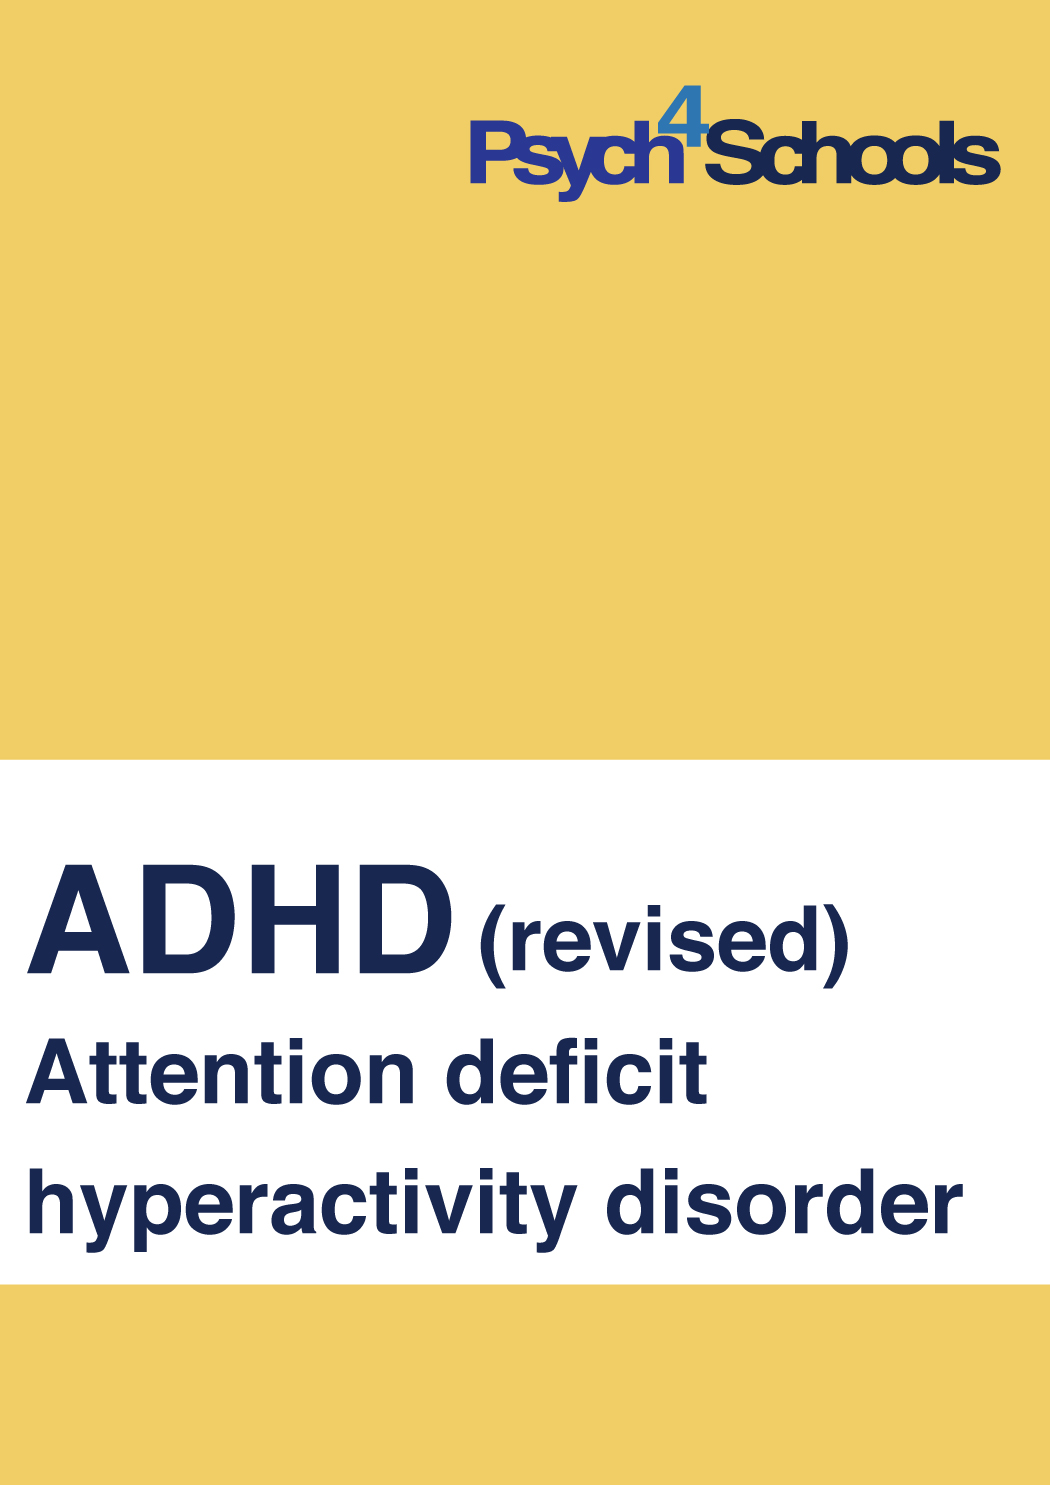 1ae9d2a7f937 Attention deficit hyperactivity disorder (ADHD)(revised) - Psych4Schools